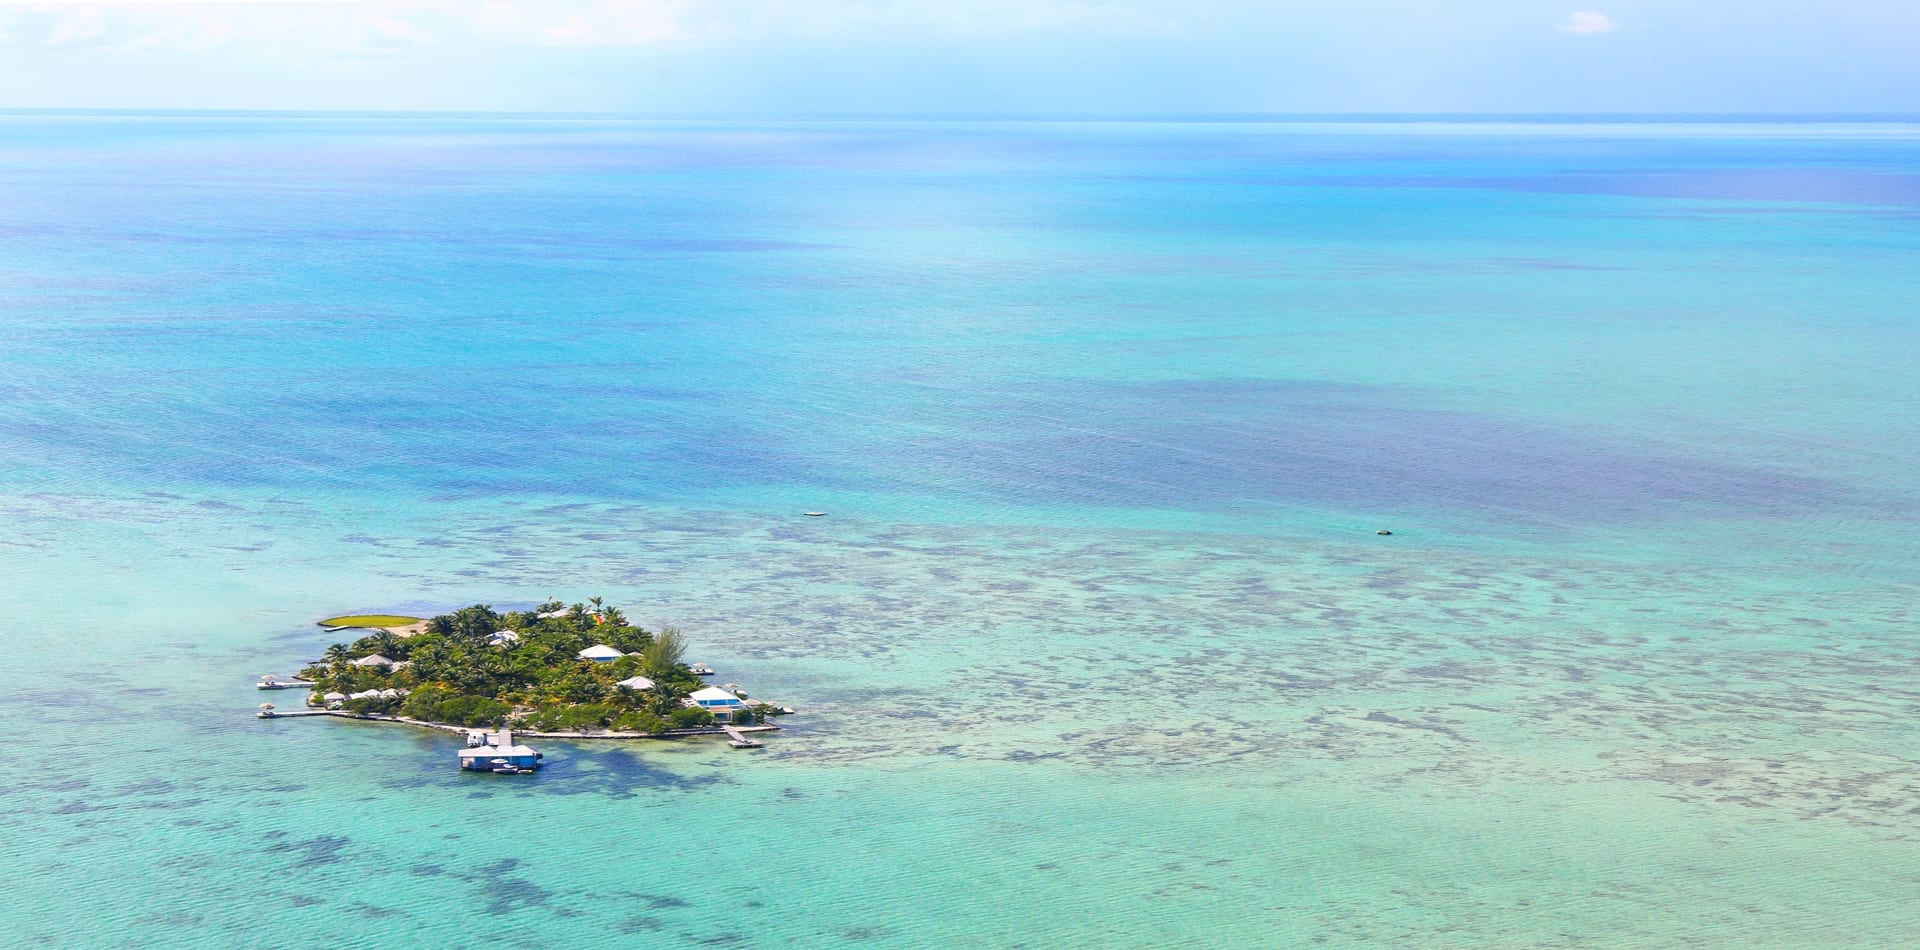 Cayo Espanto Aerial View of Island in Belize